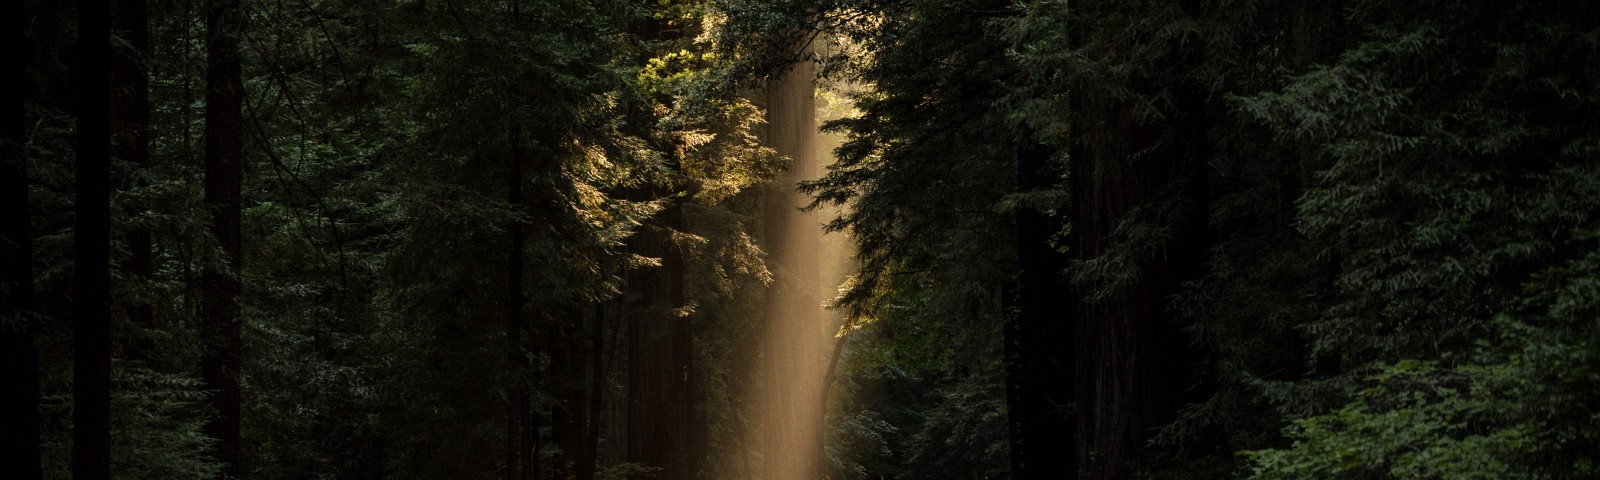 The sun shining down on a road through trees